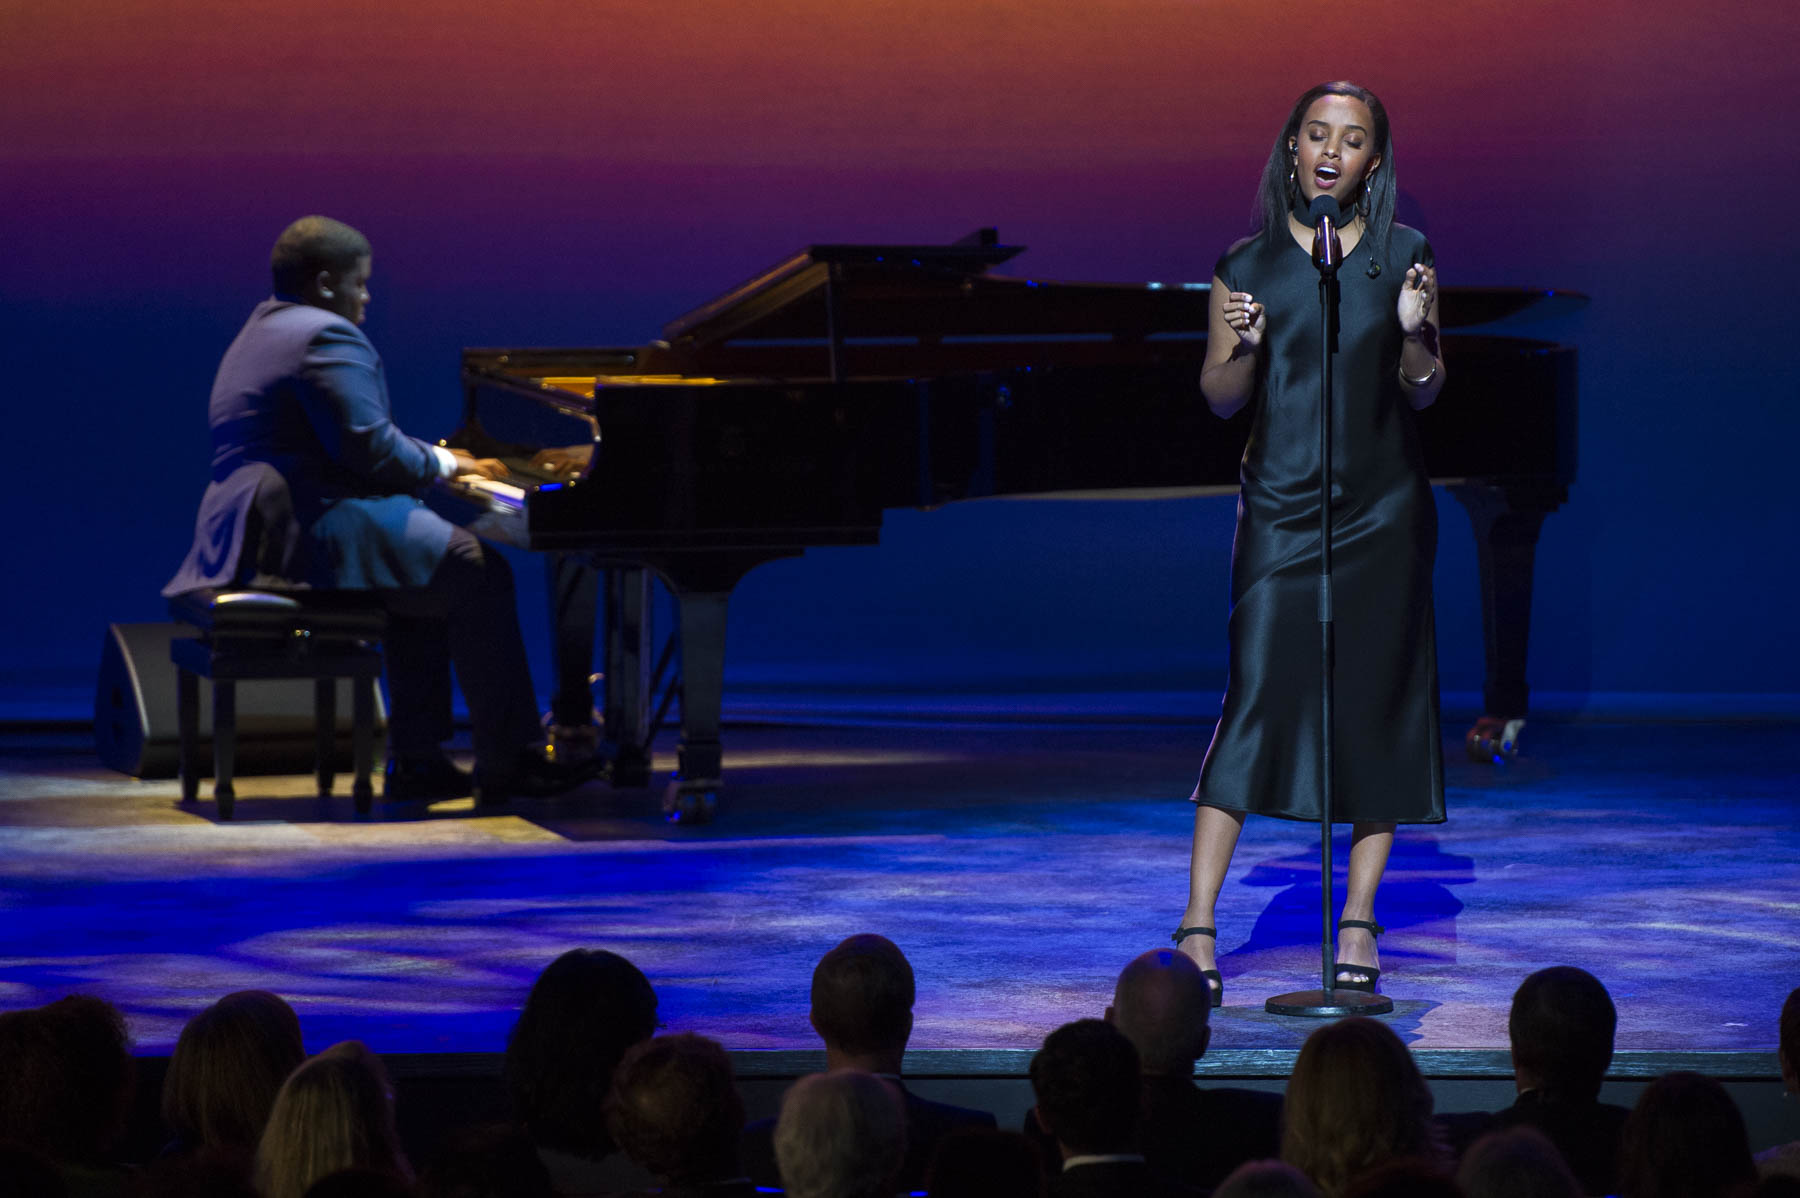 Singer Ruth B. sang Coming Home tp pay tribute to Michael Bublé.